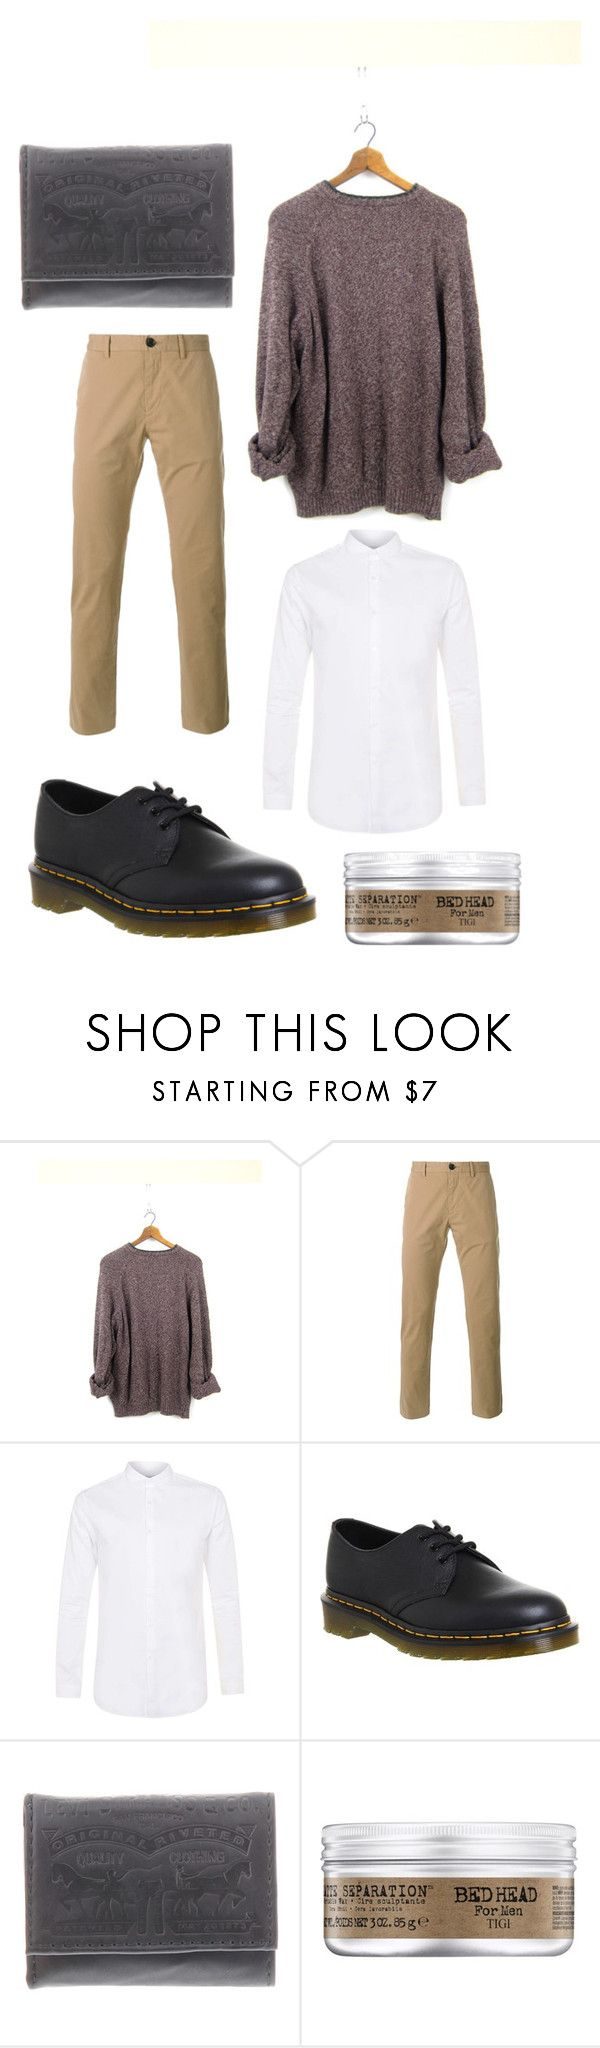 """""""Chic look"""" by morena-jacques ❤ liked on Polyvore featuring Columbia, PS Paul Smith, Topman, Dr. Martens, Levi's, men's fashion and menswear"""